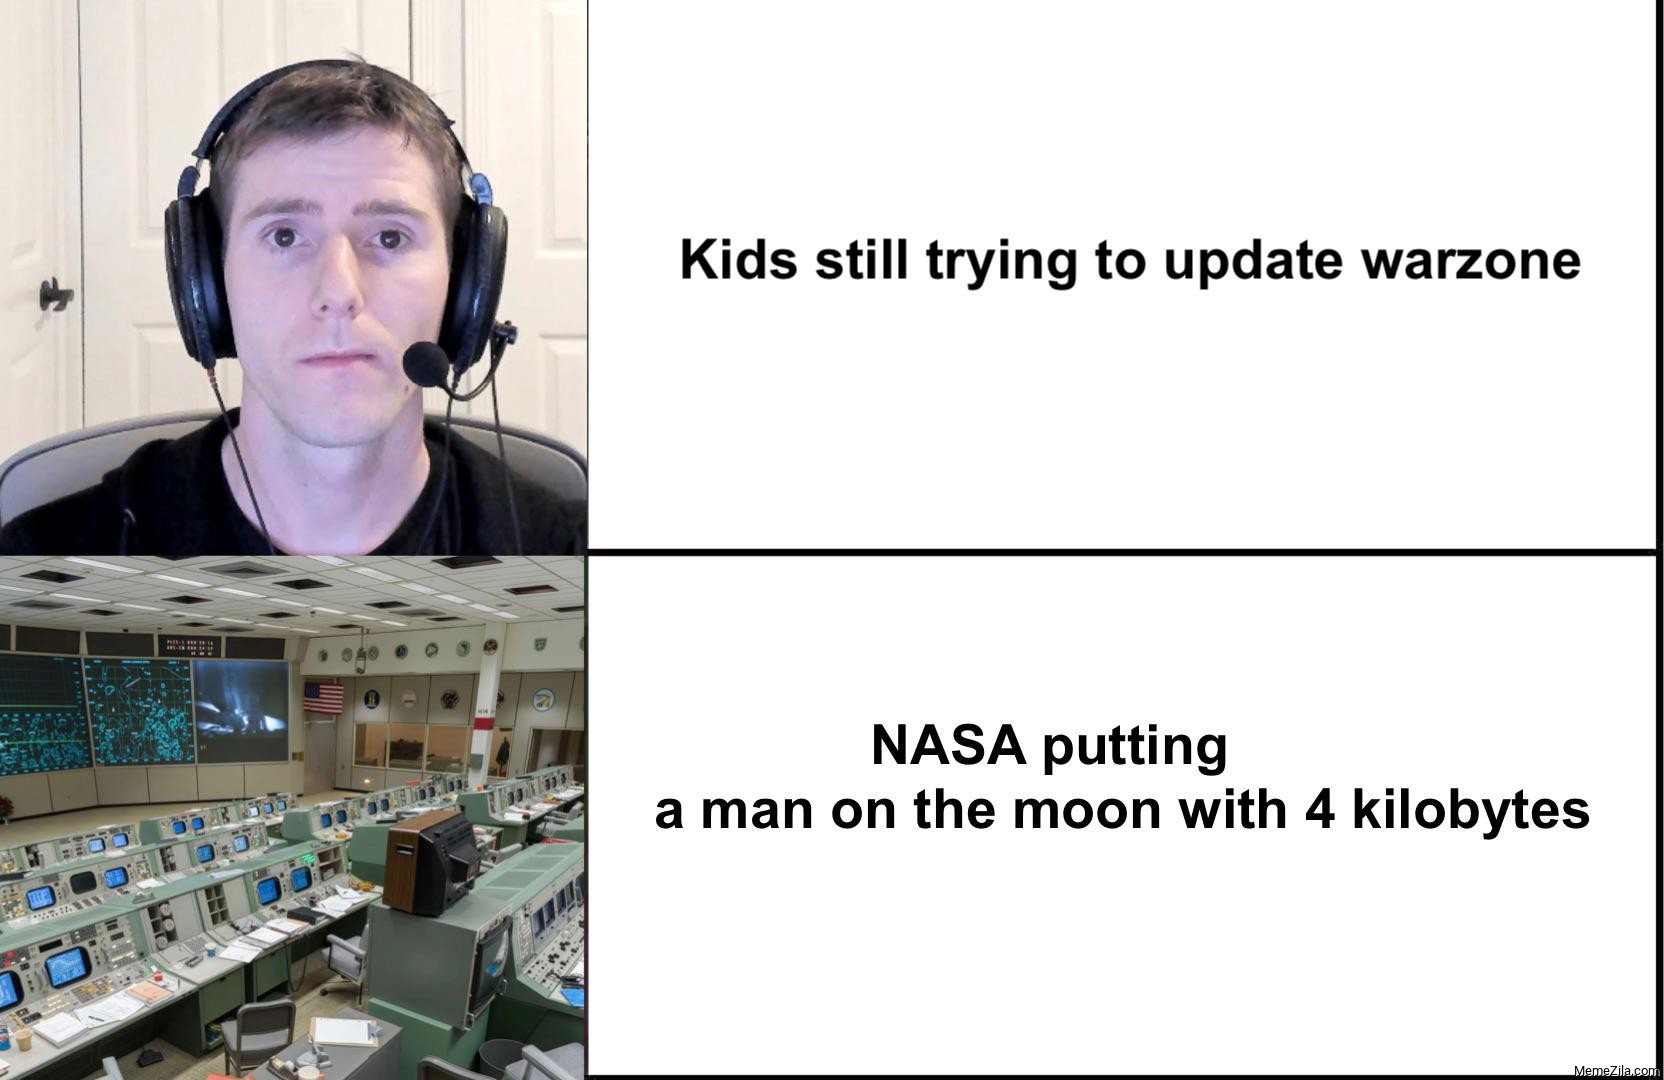 Kids still trying to update warzone NASA putting a man on moon with 4 kilobytes meme